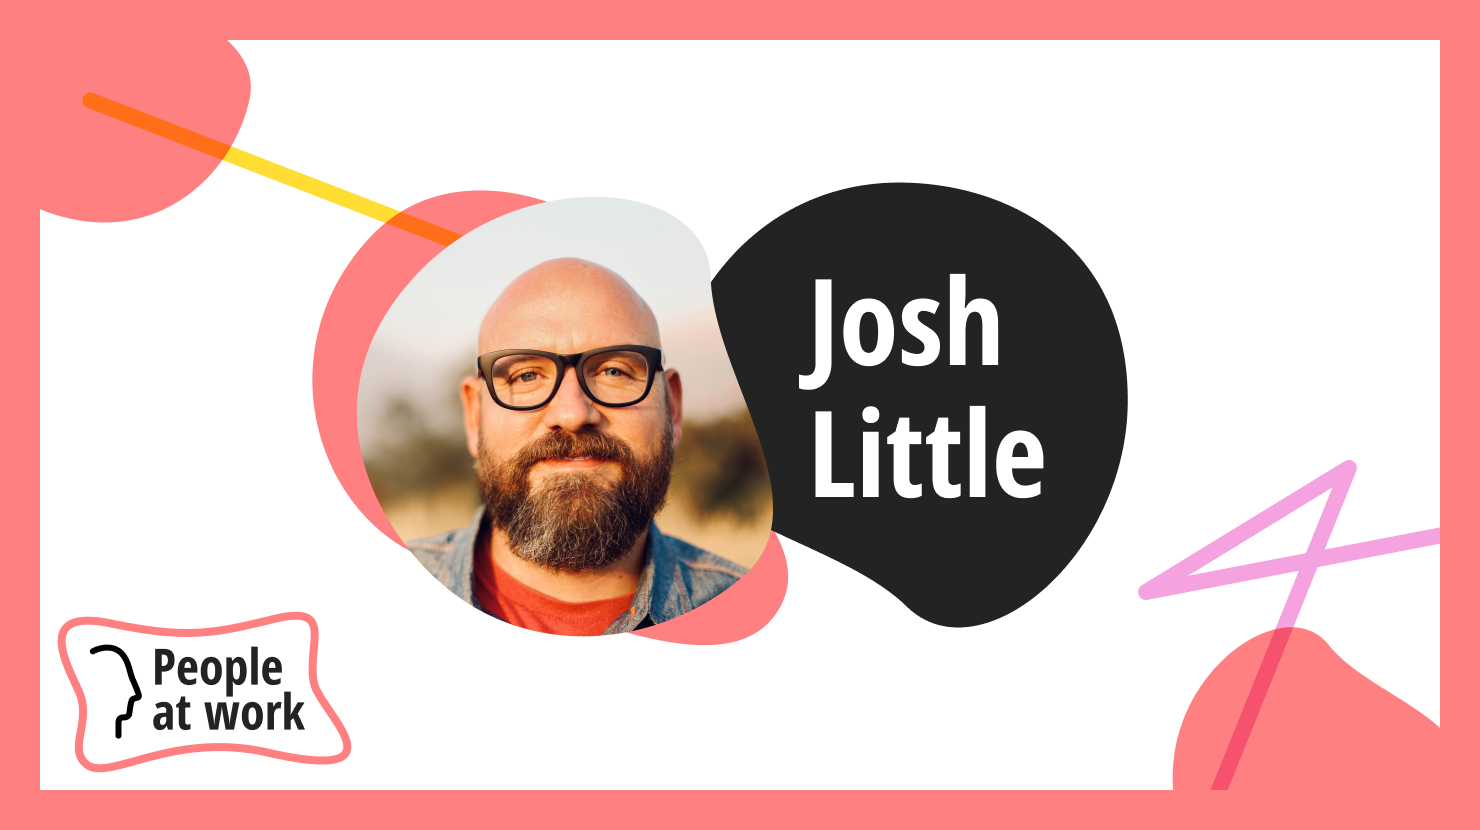 Meet, chat, or Volley? With Josh Little